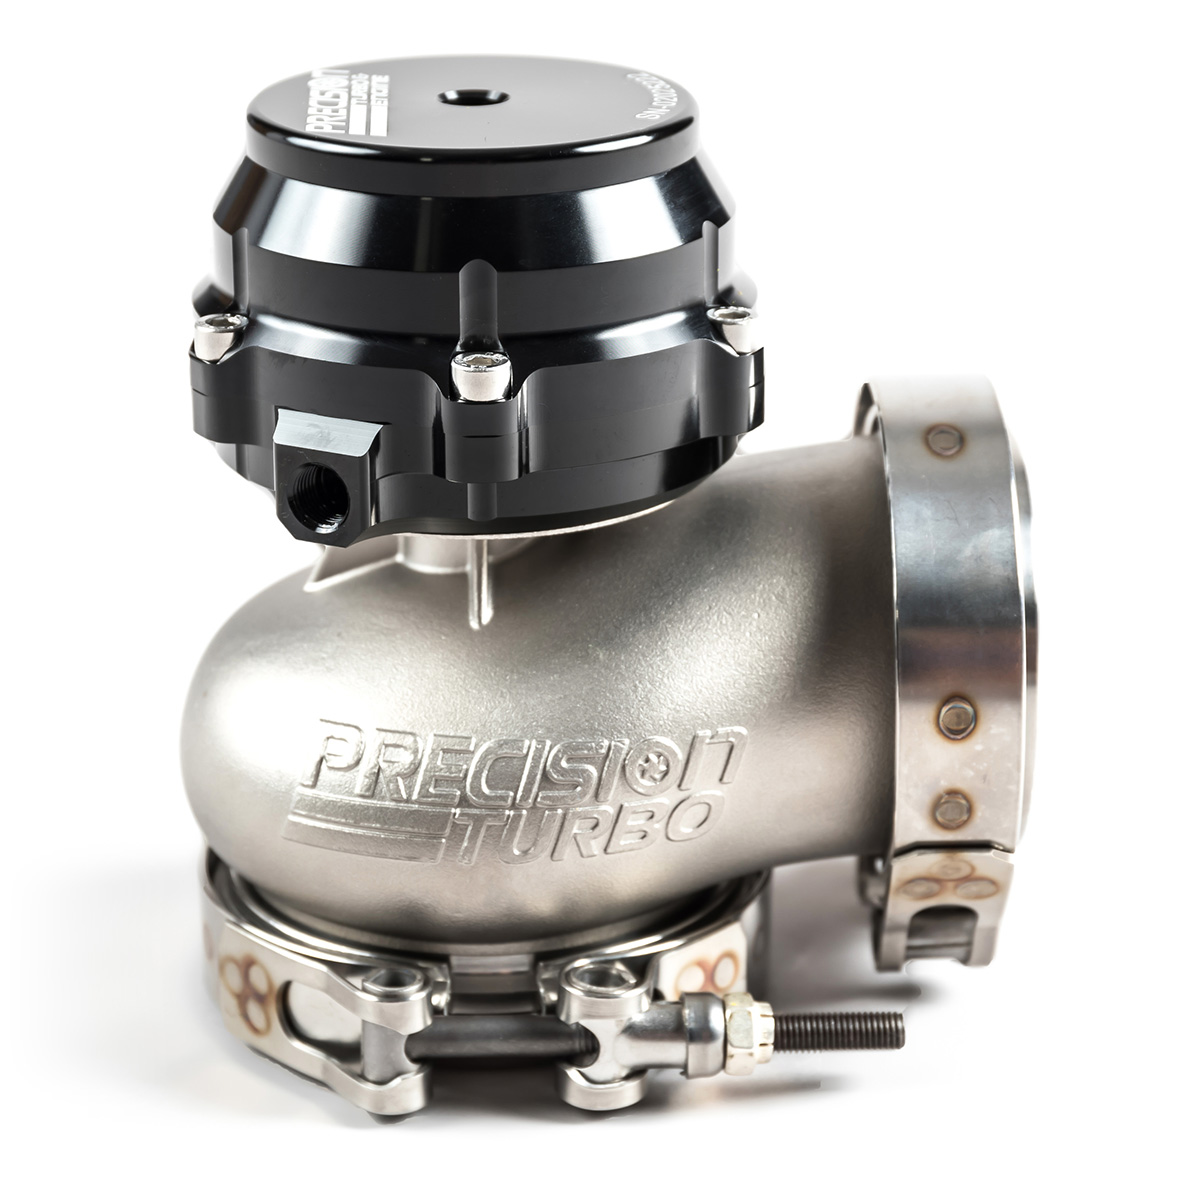 Precision Turbo For Sale: Precision Turbo PW66 66mm External Wastegate